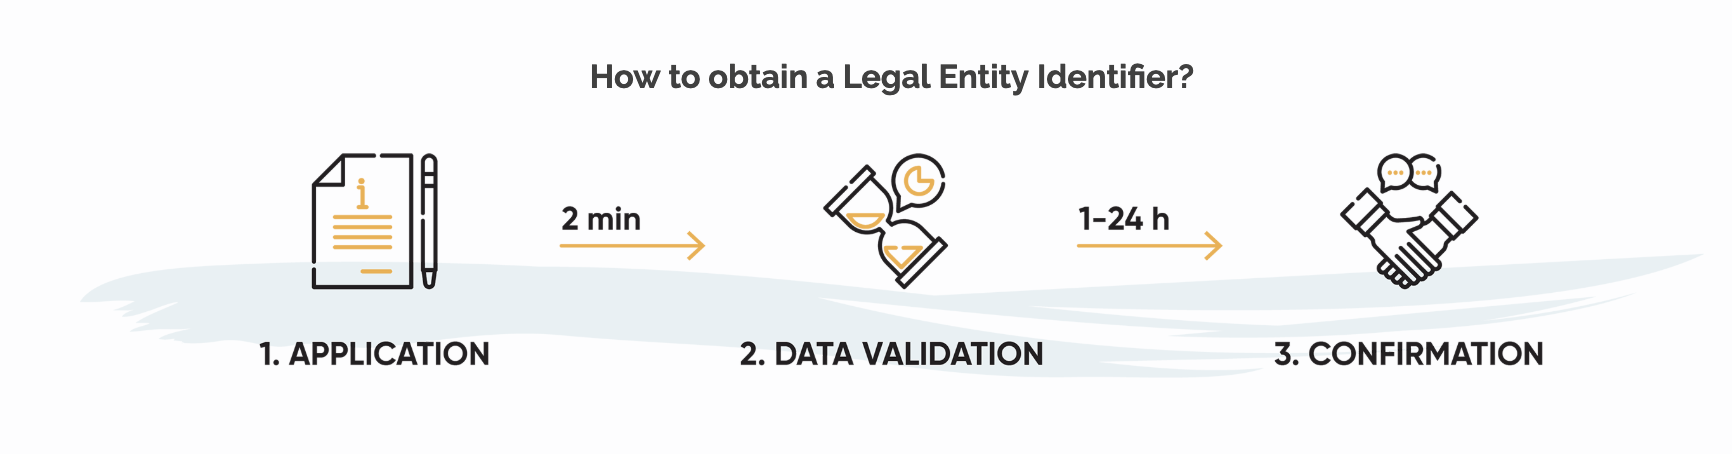 How to obtain a Legal Entity Identifier?